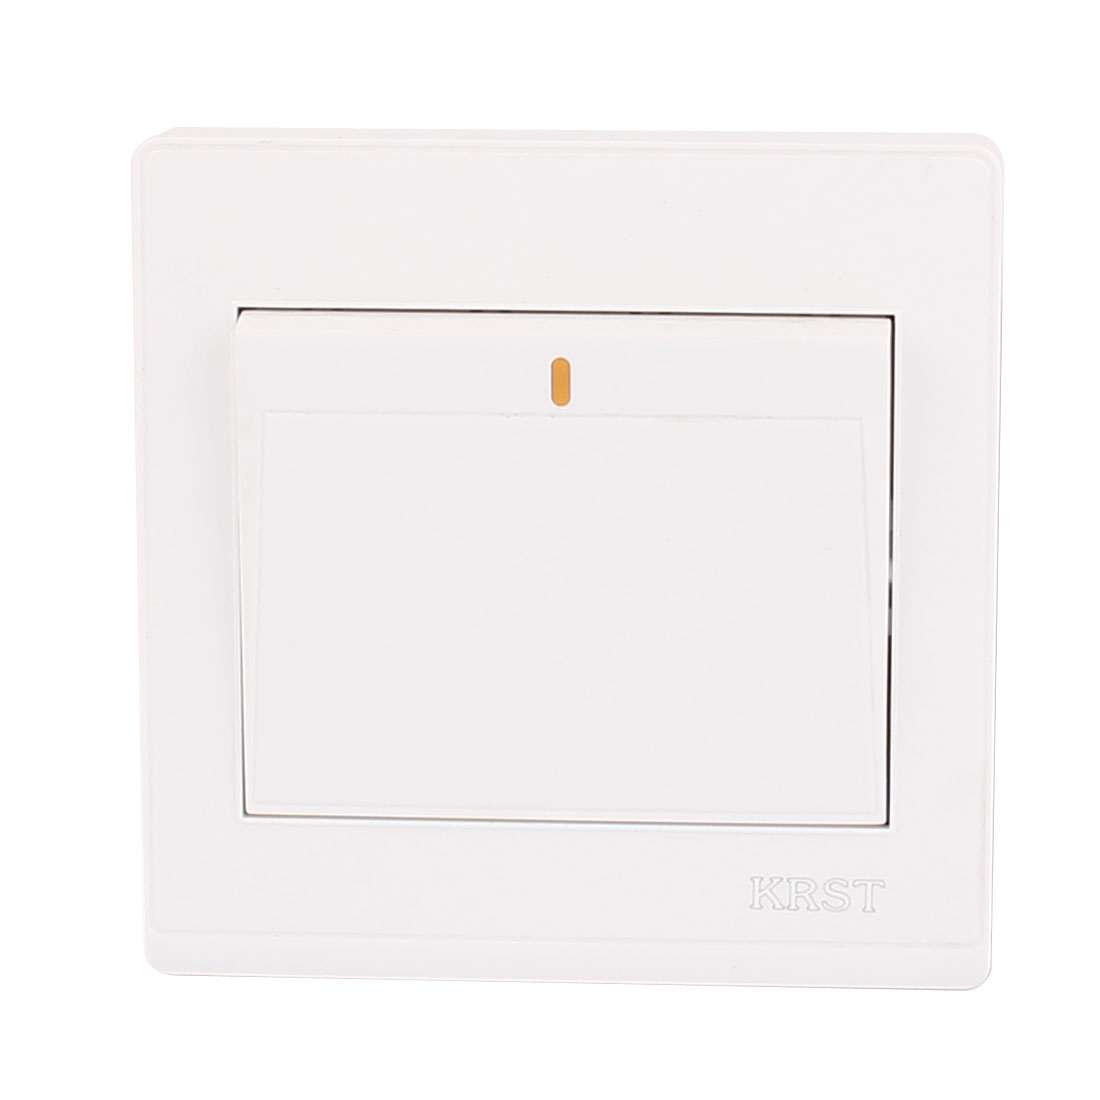 On Off Press Button 1 Gang 1 Way Wall Switch Home Light